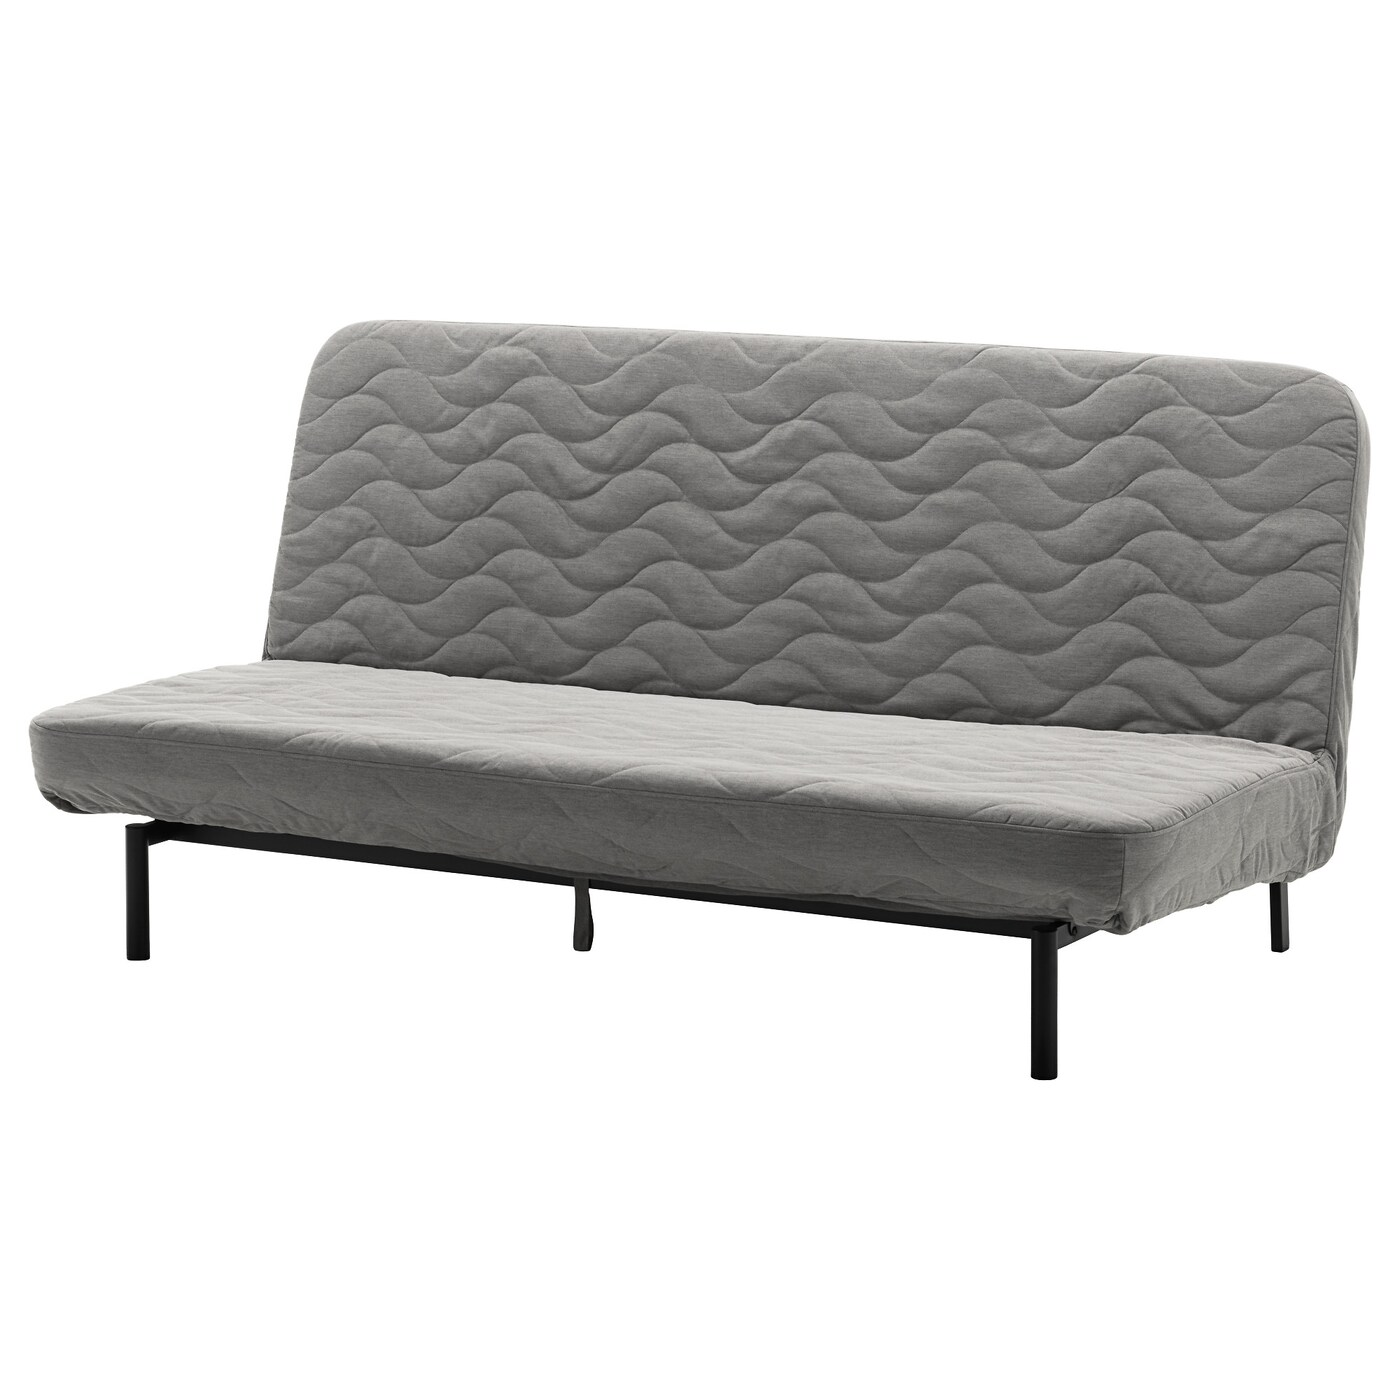 Bettsofa Nyhamn Nyhamn 3 Seat Sofa Bed With Pocket Spring Mattress Knisa